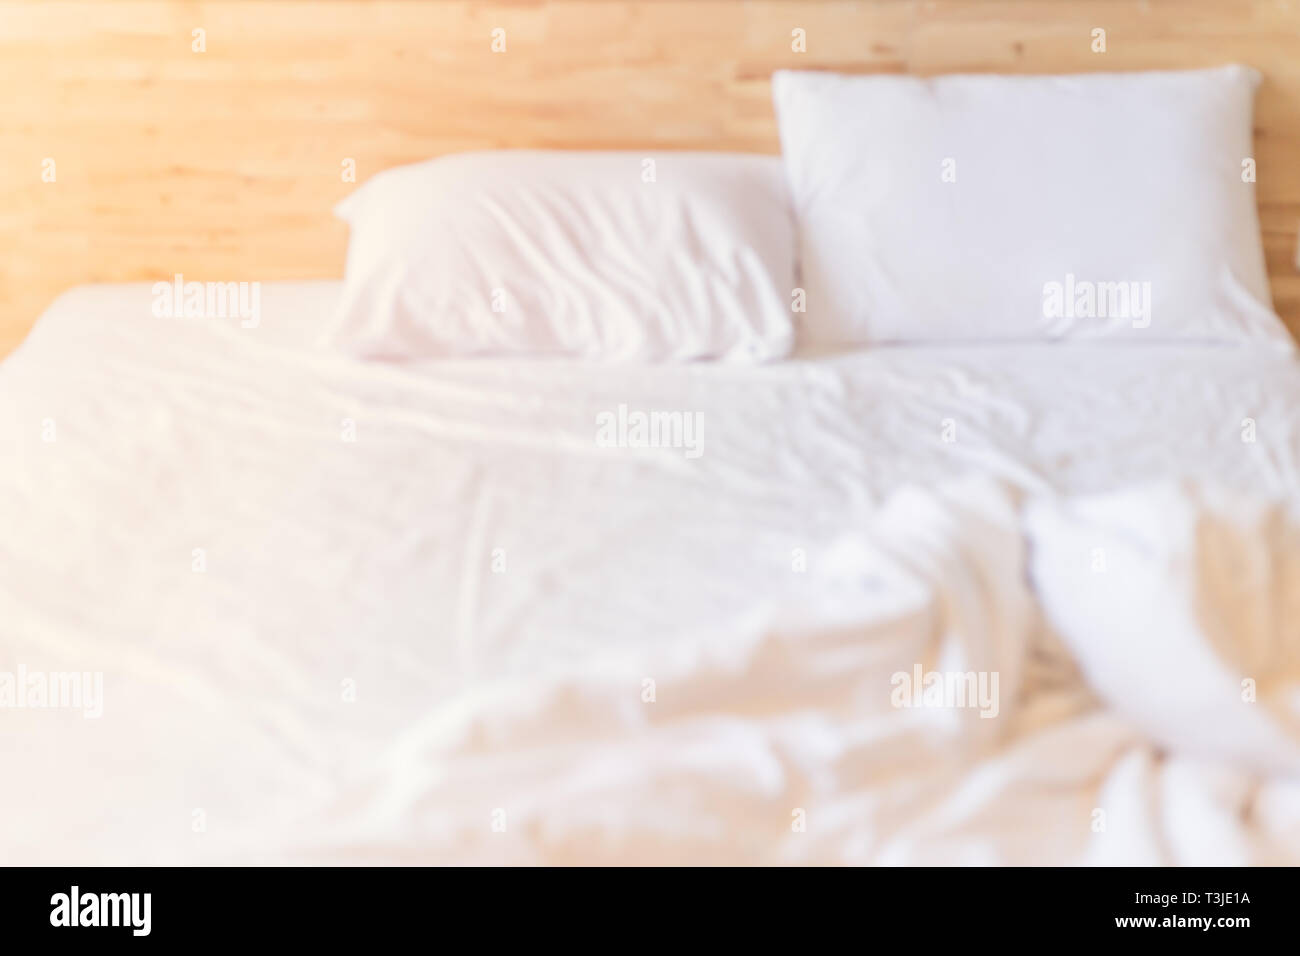 blur morning white clean messy bed for background - Stock Image